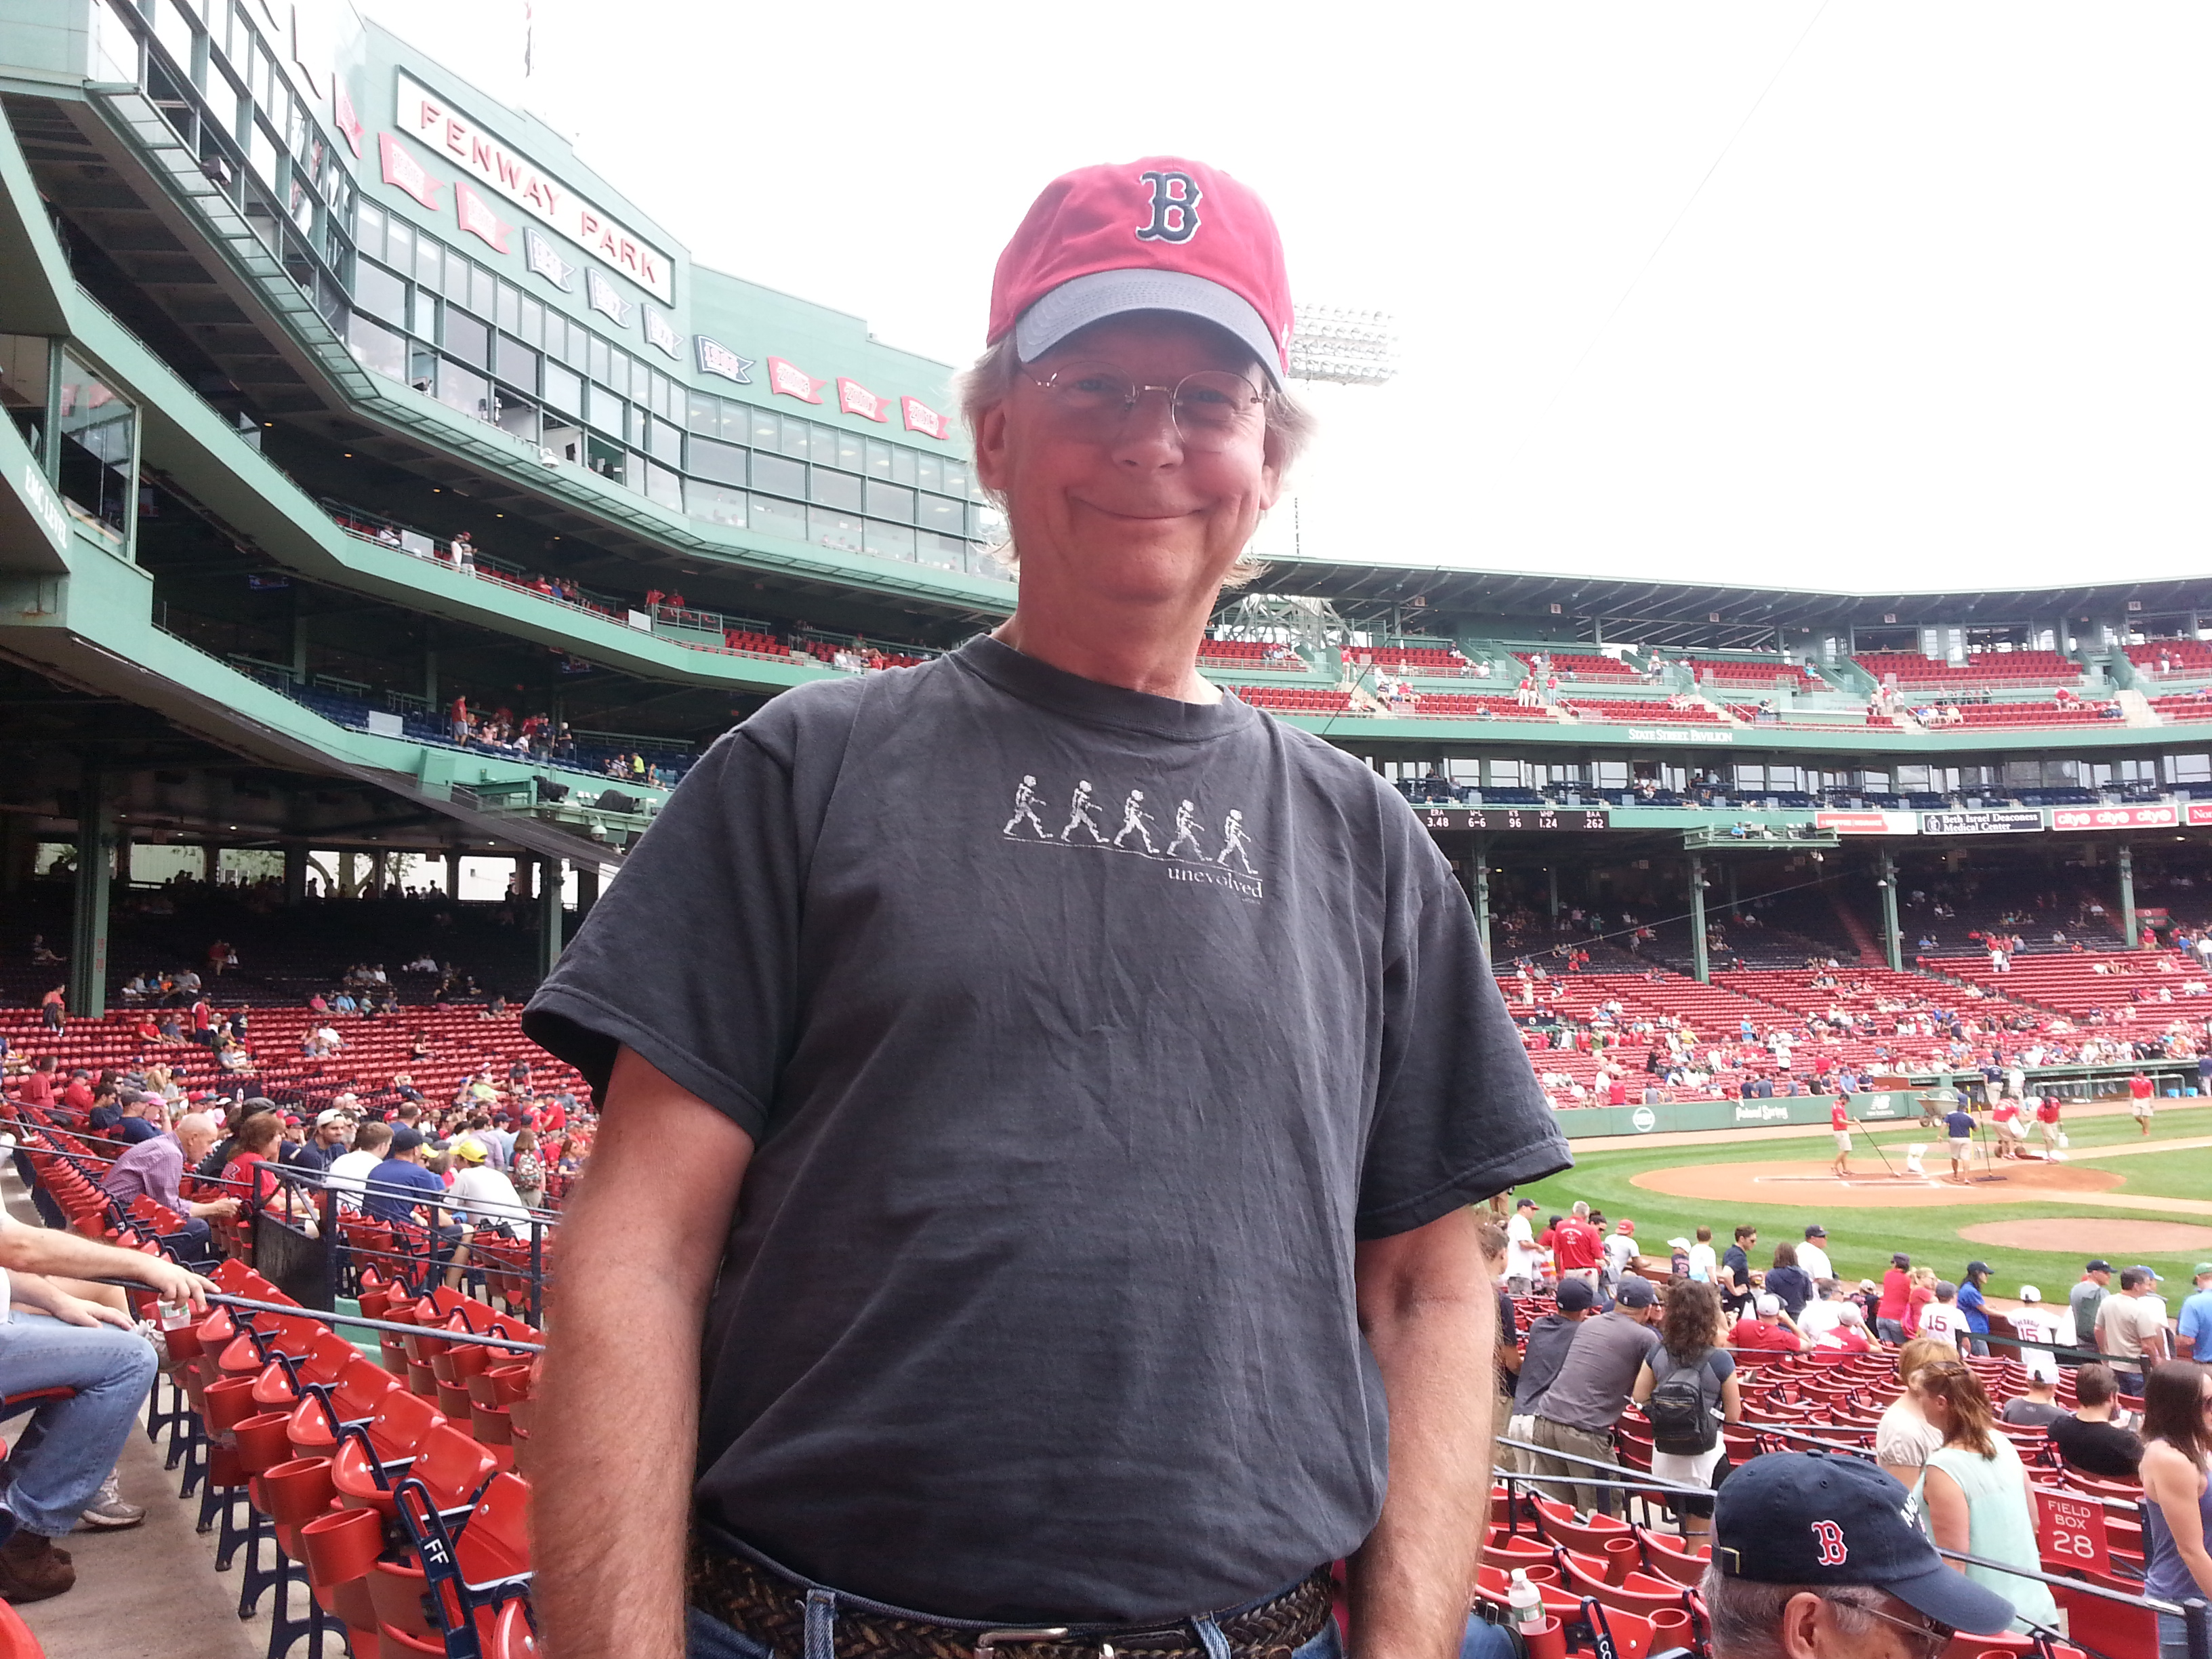 Alan at Fenway 7/4/15